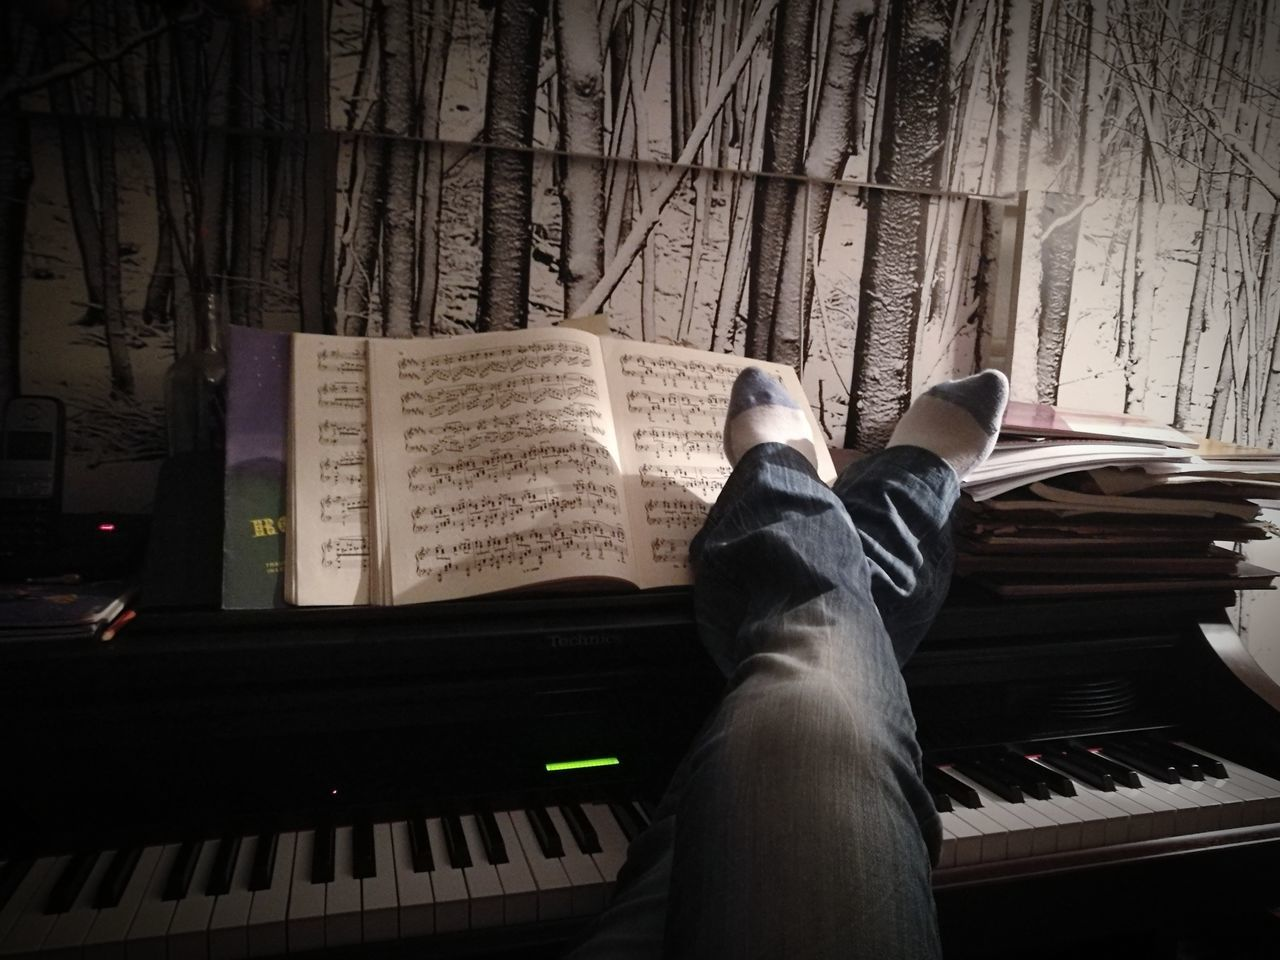 Piano Moments Low Section Human Body Part Human Leg Adults Only One Person Piano Player Relaxing Moments Music Brings Us Together Musical Instruments Musical Evening My Live, My Wold Catch The Moment Eyem Gallery Eyeemphoto Eveningmood